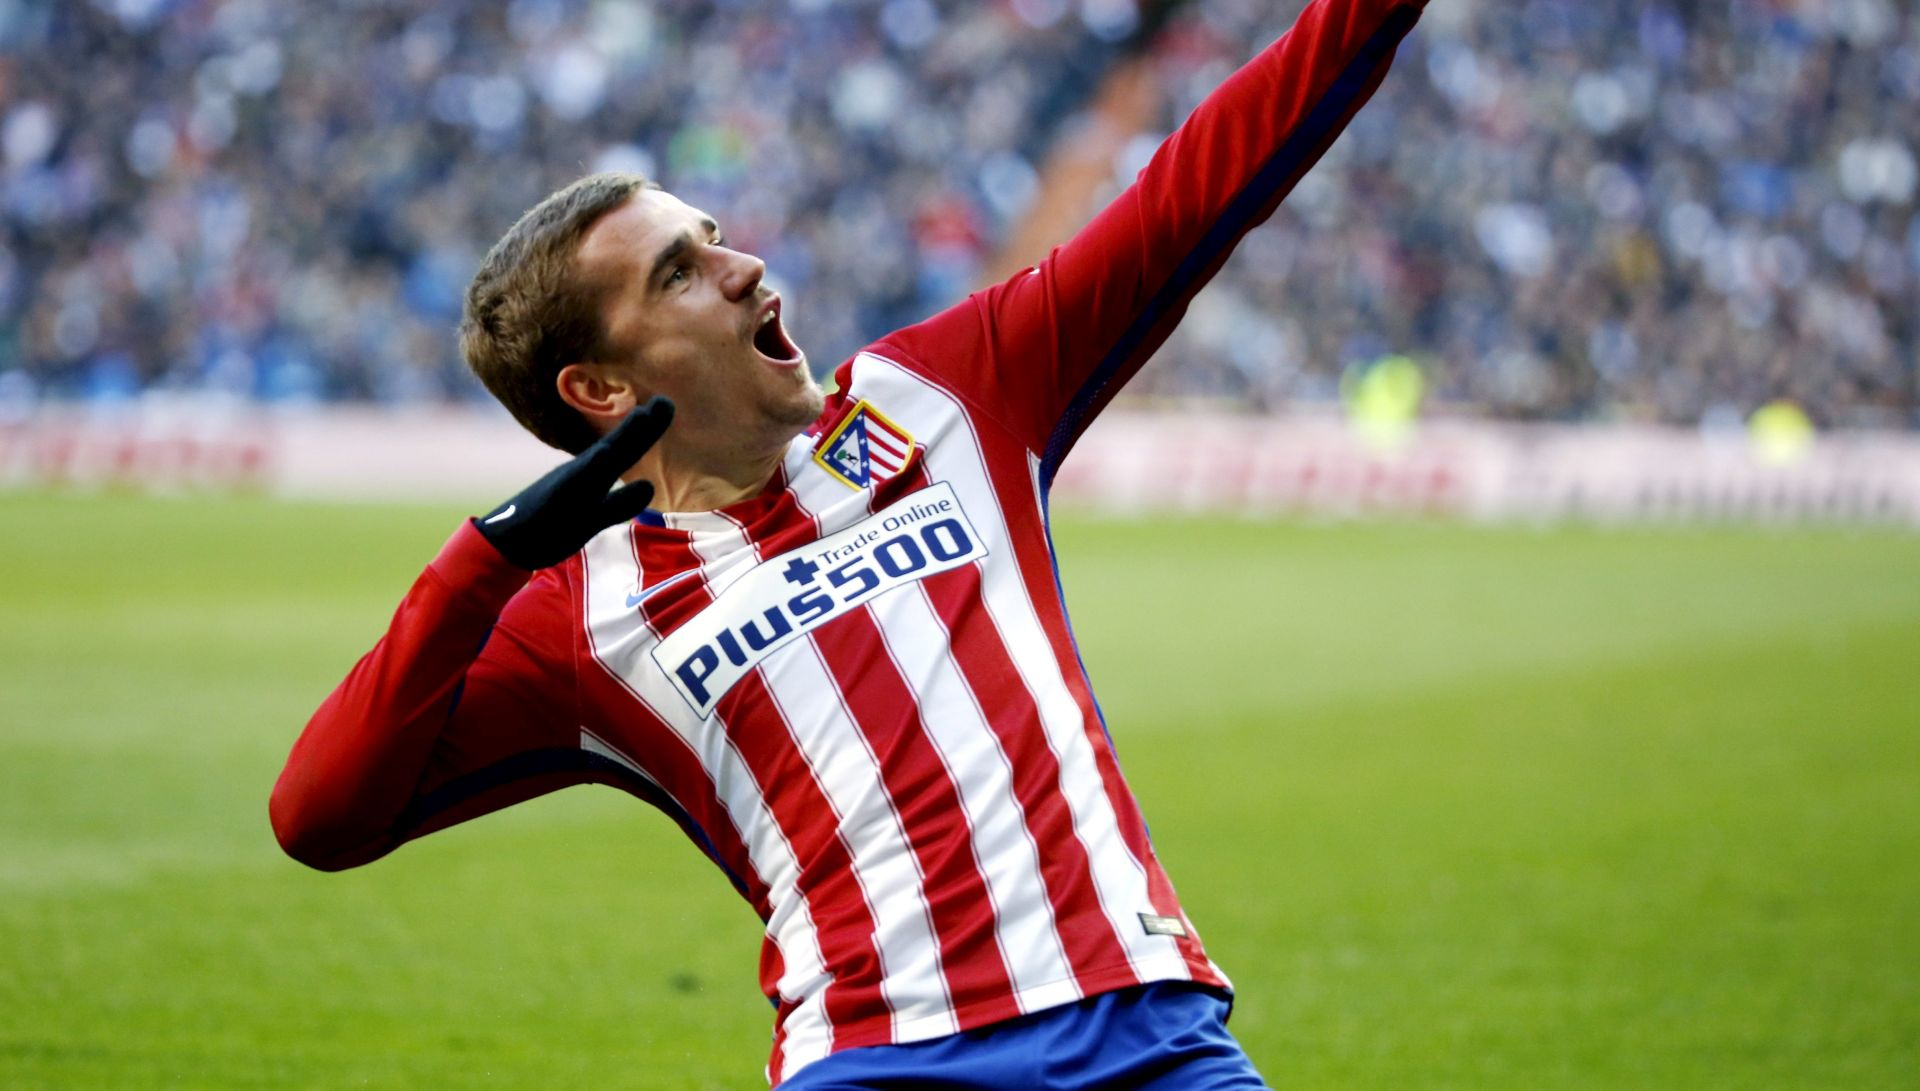 Griezmann s Atleticom produžio do 2023.